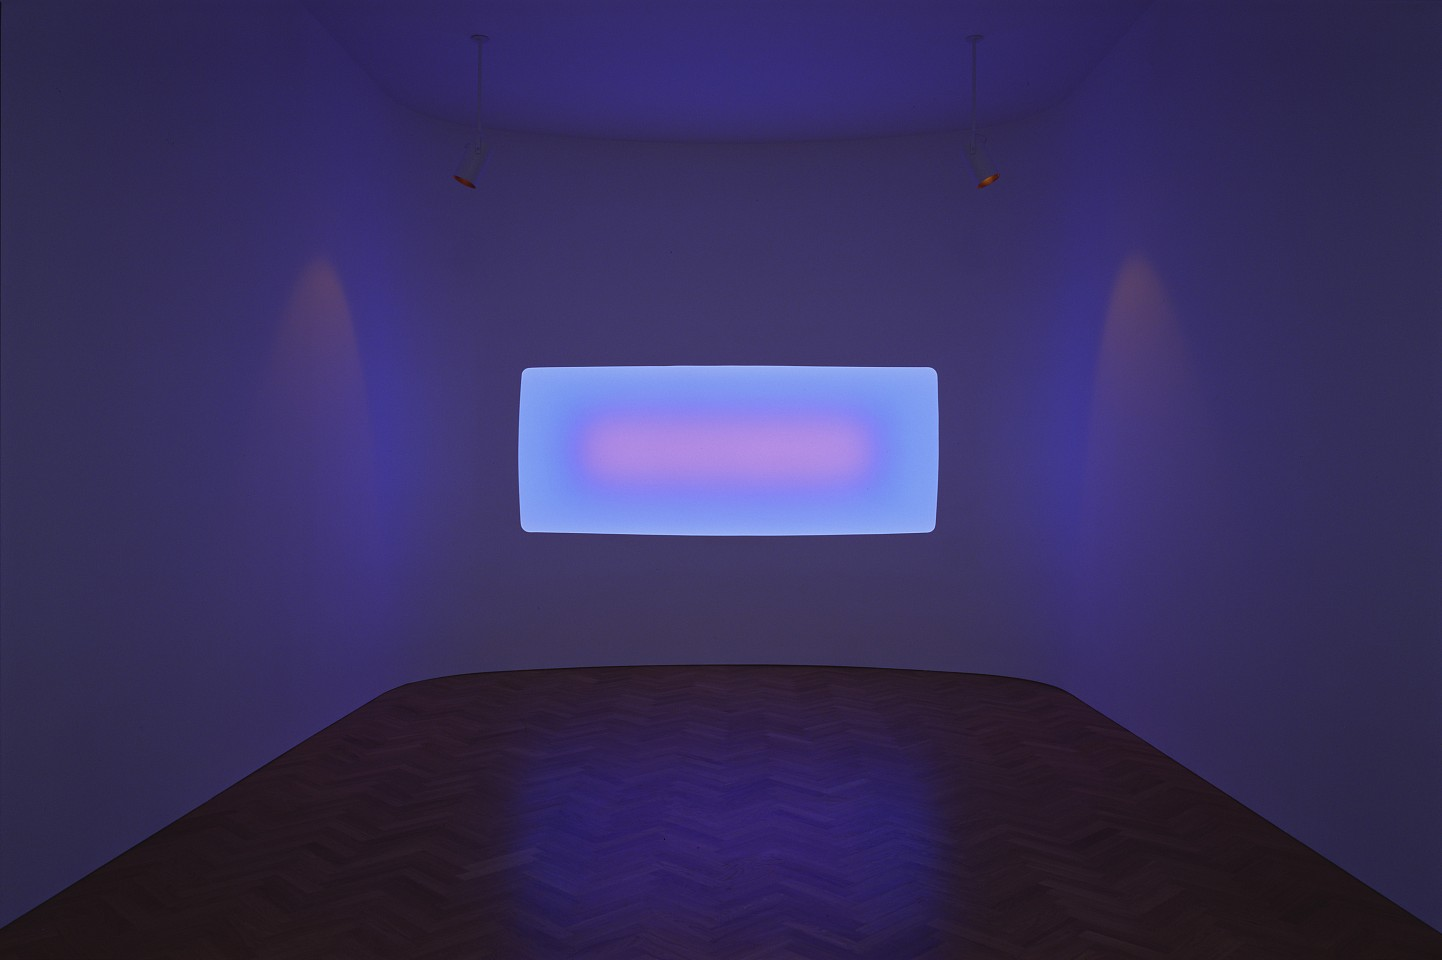 "<p><span class=""viewer-caption-artist"">James Turrell</span></p> <p><span class=""viewer-caption-title""><i>Pelee</i></span>, <span class=""viewer-caption-year"">2014</span></p> <p><span class=""viewer-caption-media"">Wide glass</span></p> <p><span class=""viewer-caption-inventory"">JT0001</span></p> <p><span class=""viewer-caption-aux""></span></p>"